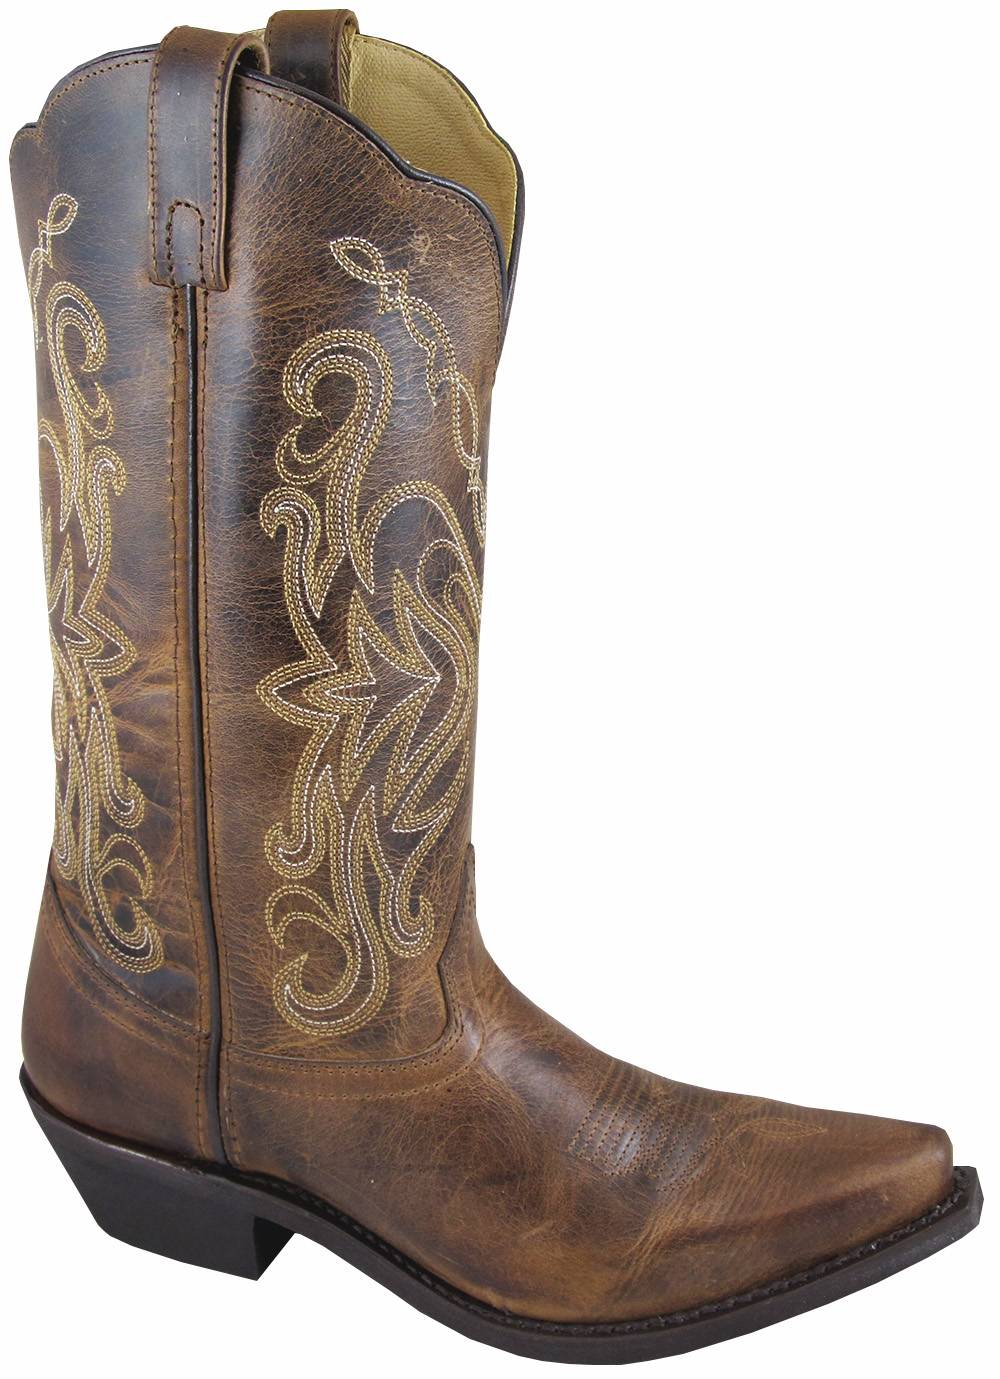 Smoky Mountain Women's MADISON Snip Toe Boot